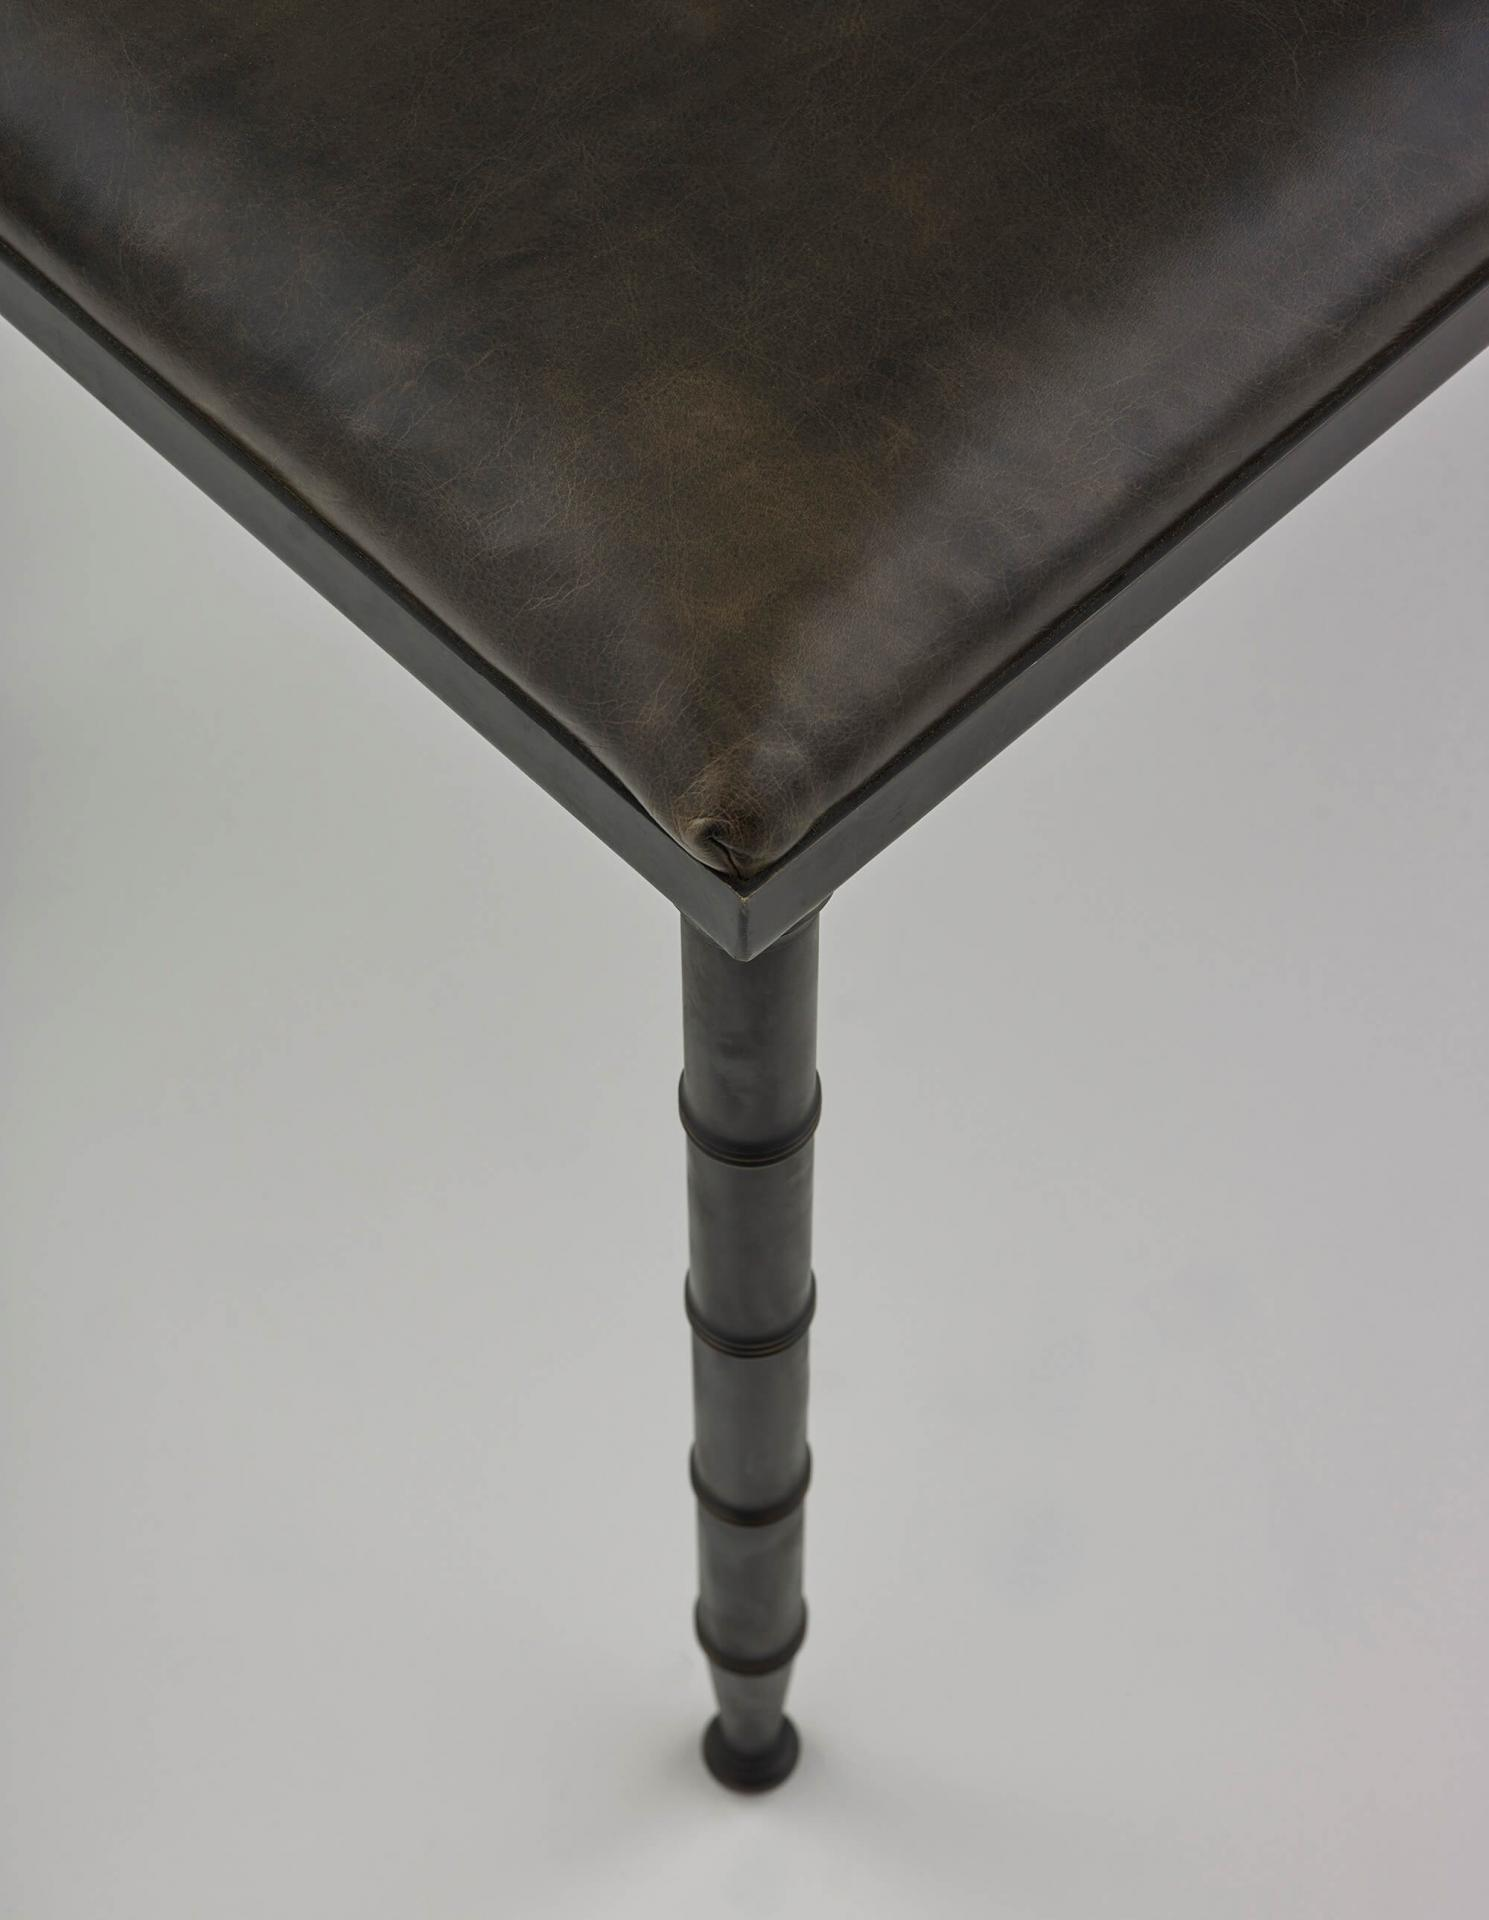 Ramsay Bench, a brass and leather bench